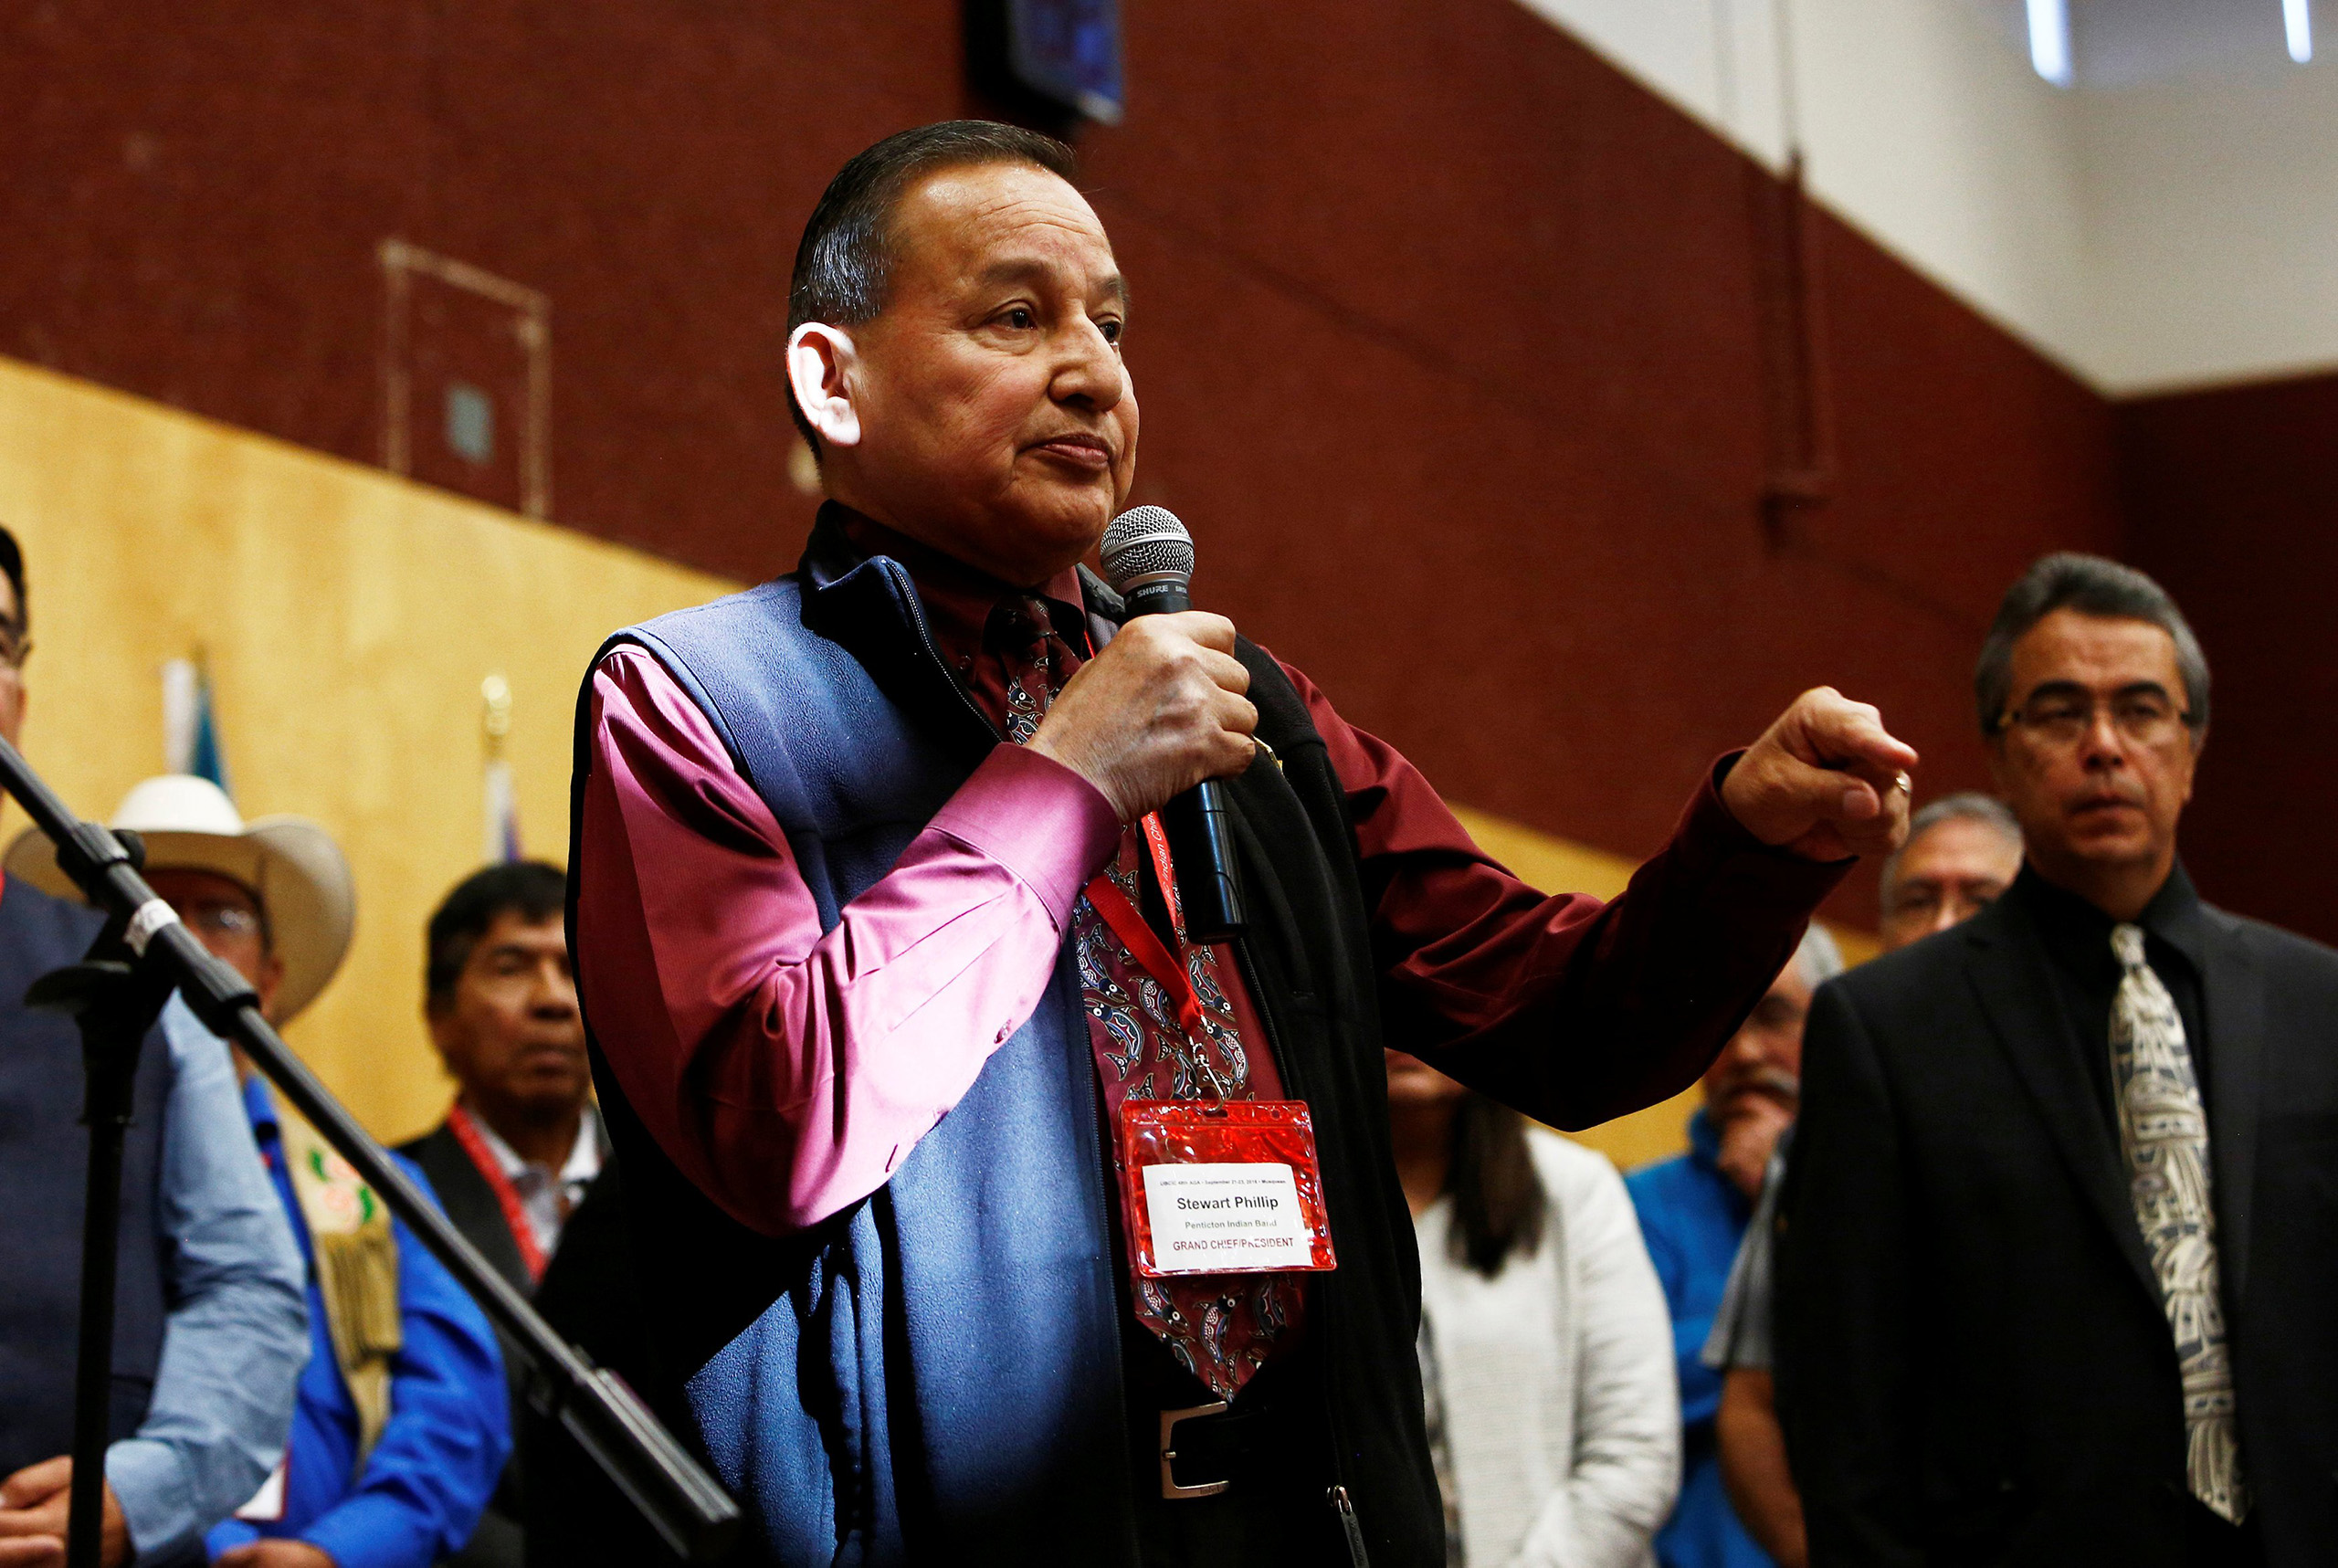 Grand Chief Stewart Phillip speaks to First Nations leaders before signing the Treaty Alliance Against Tar Sands Expansion at the Musqueam Community Centre in Vancouver, British Columbia, Canada, Sept. 22, 2016.